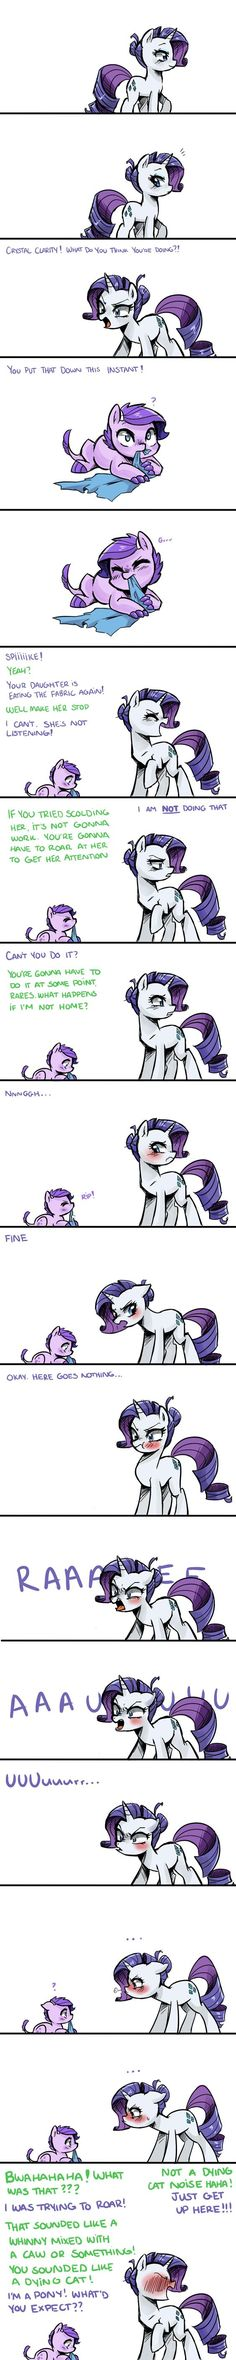 I don't ship Spike and Rarity, but this is hilarious XD XD XD XD